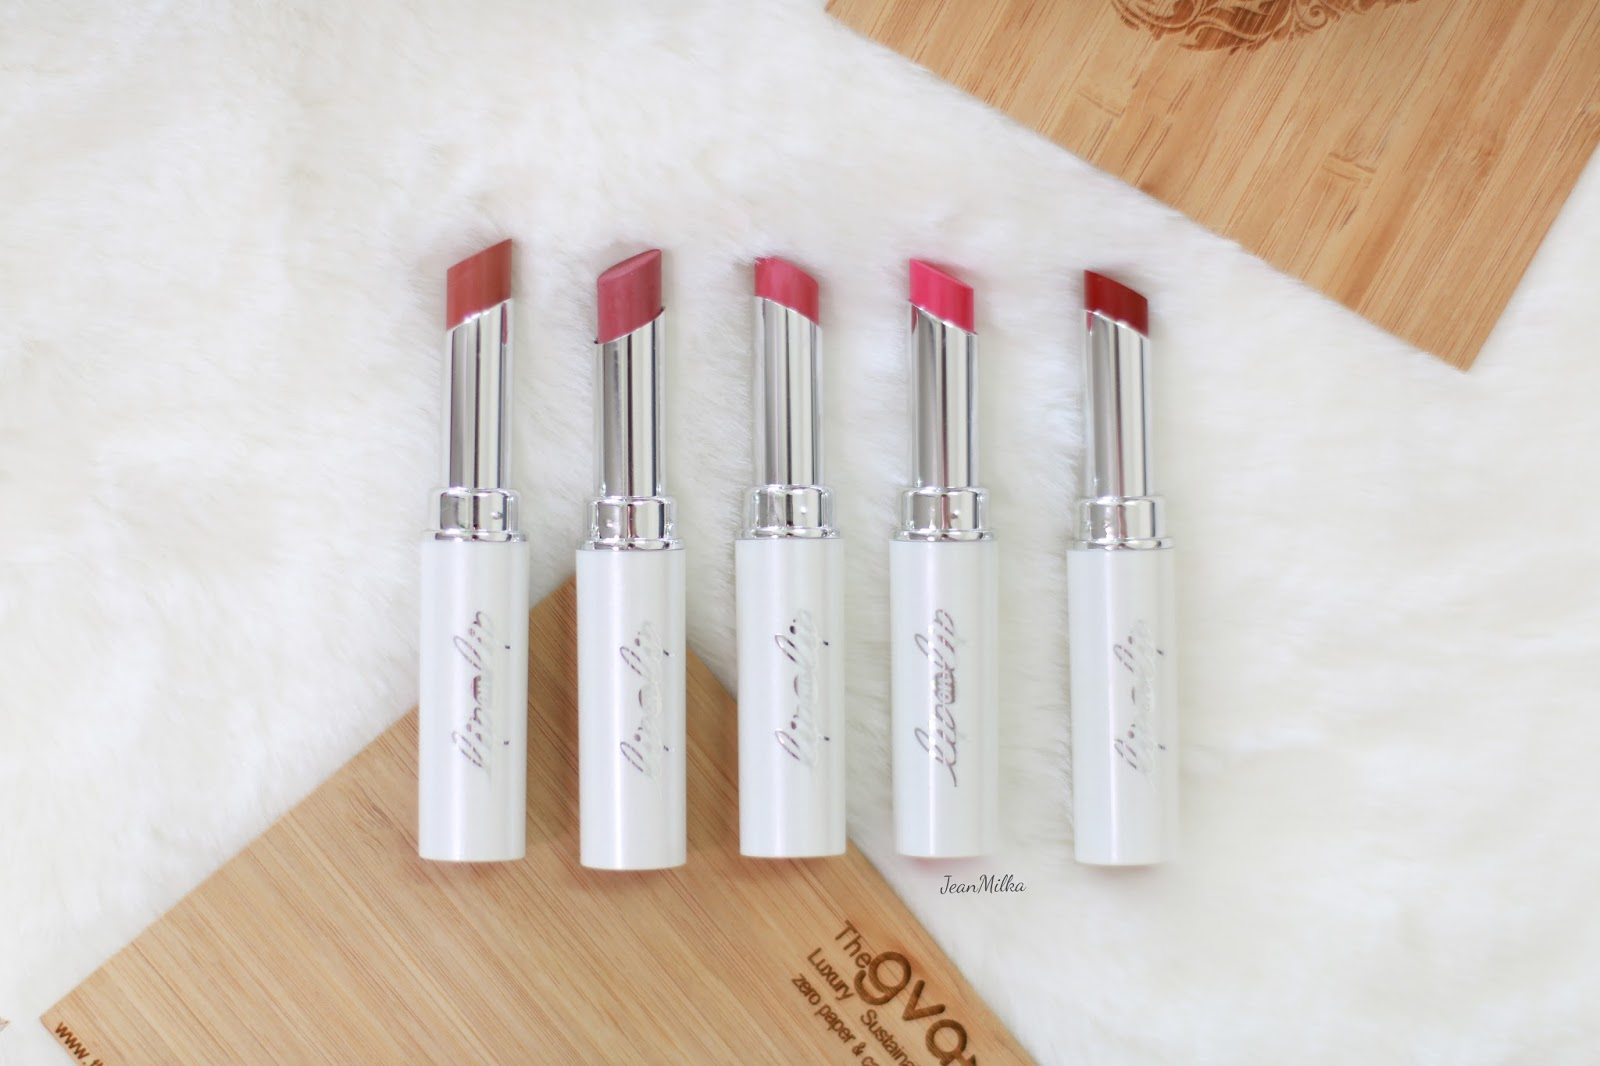 lip on lip, lip on lip lipstik, lip on lip matte lipstick, matte lipstick, drugstore makeup, makeup, lipstick, lips, lipstick murah, makeup indonesia, drugstore makeup